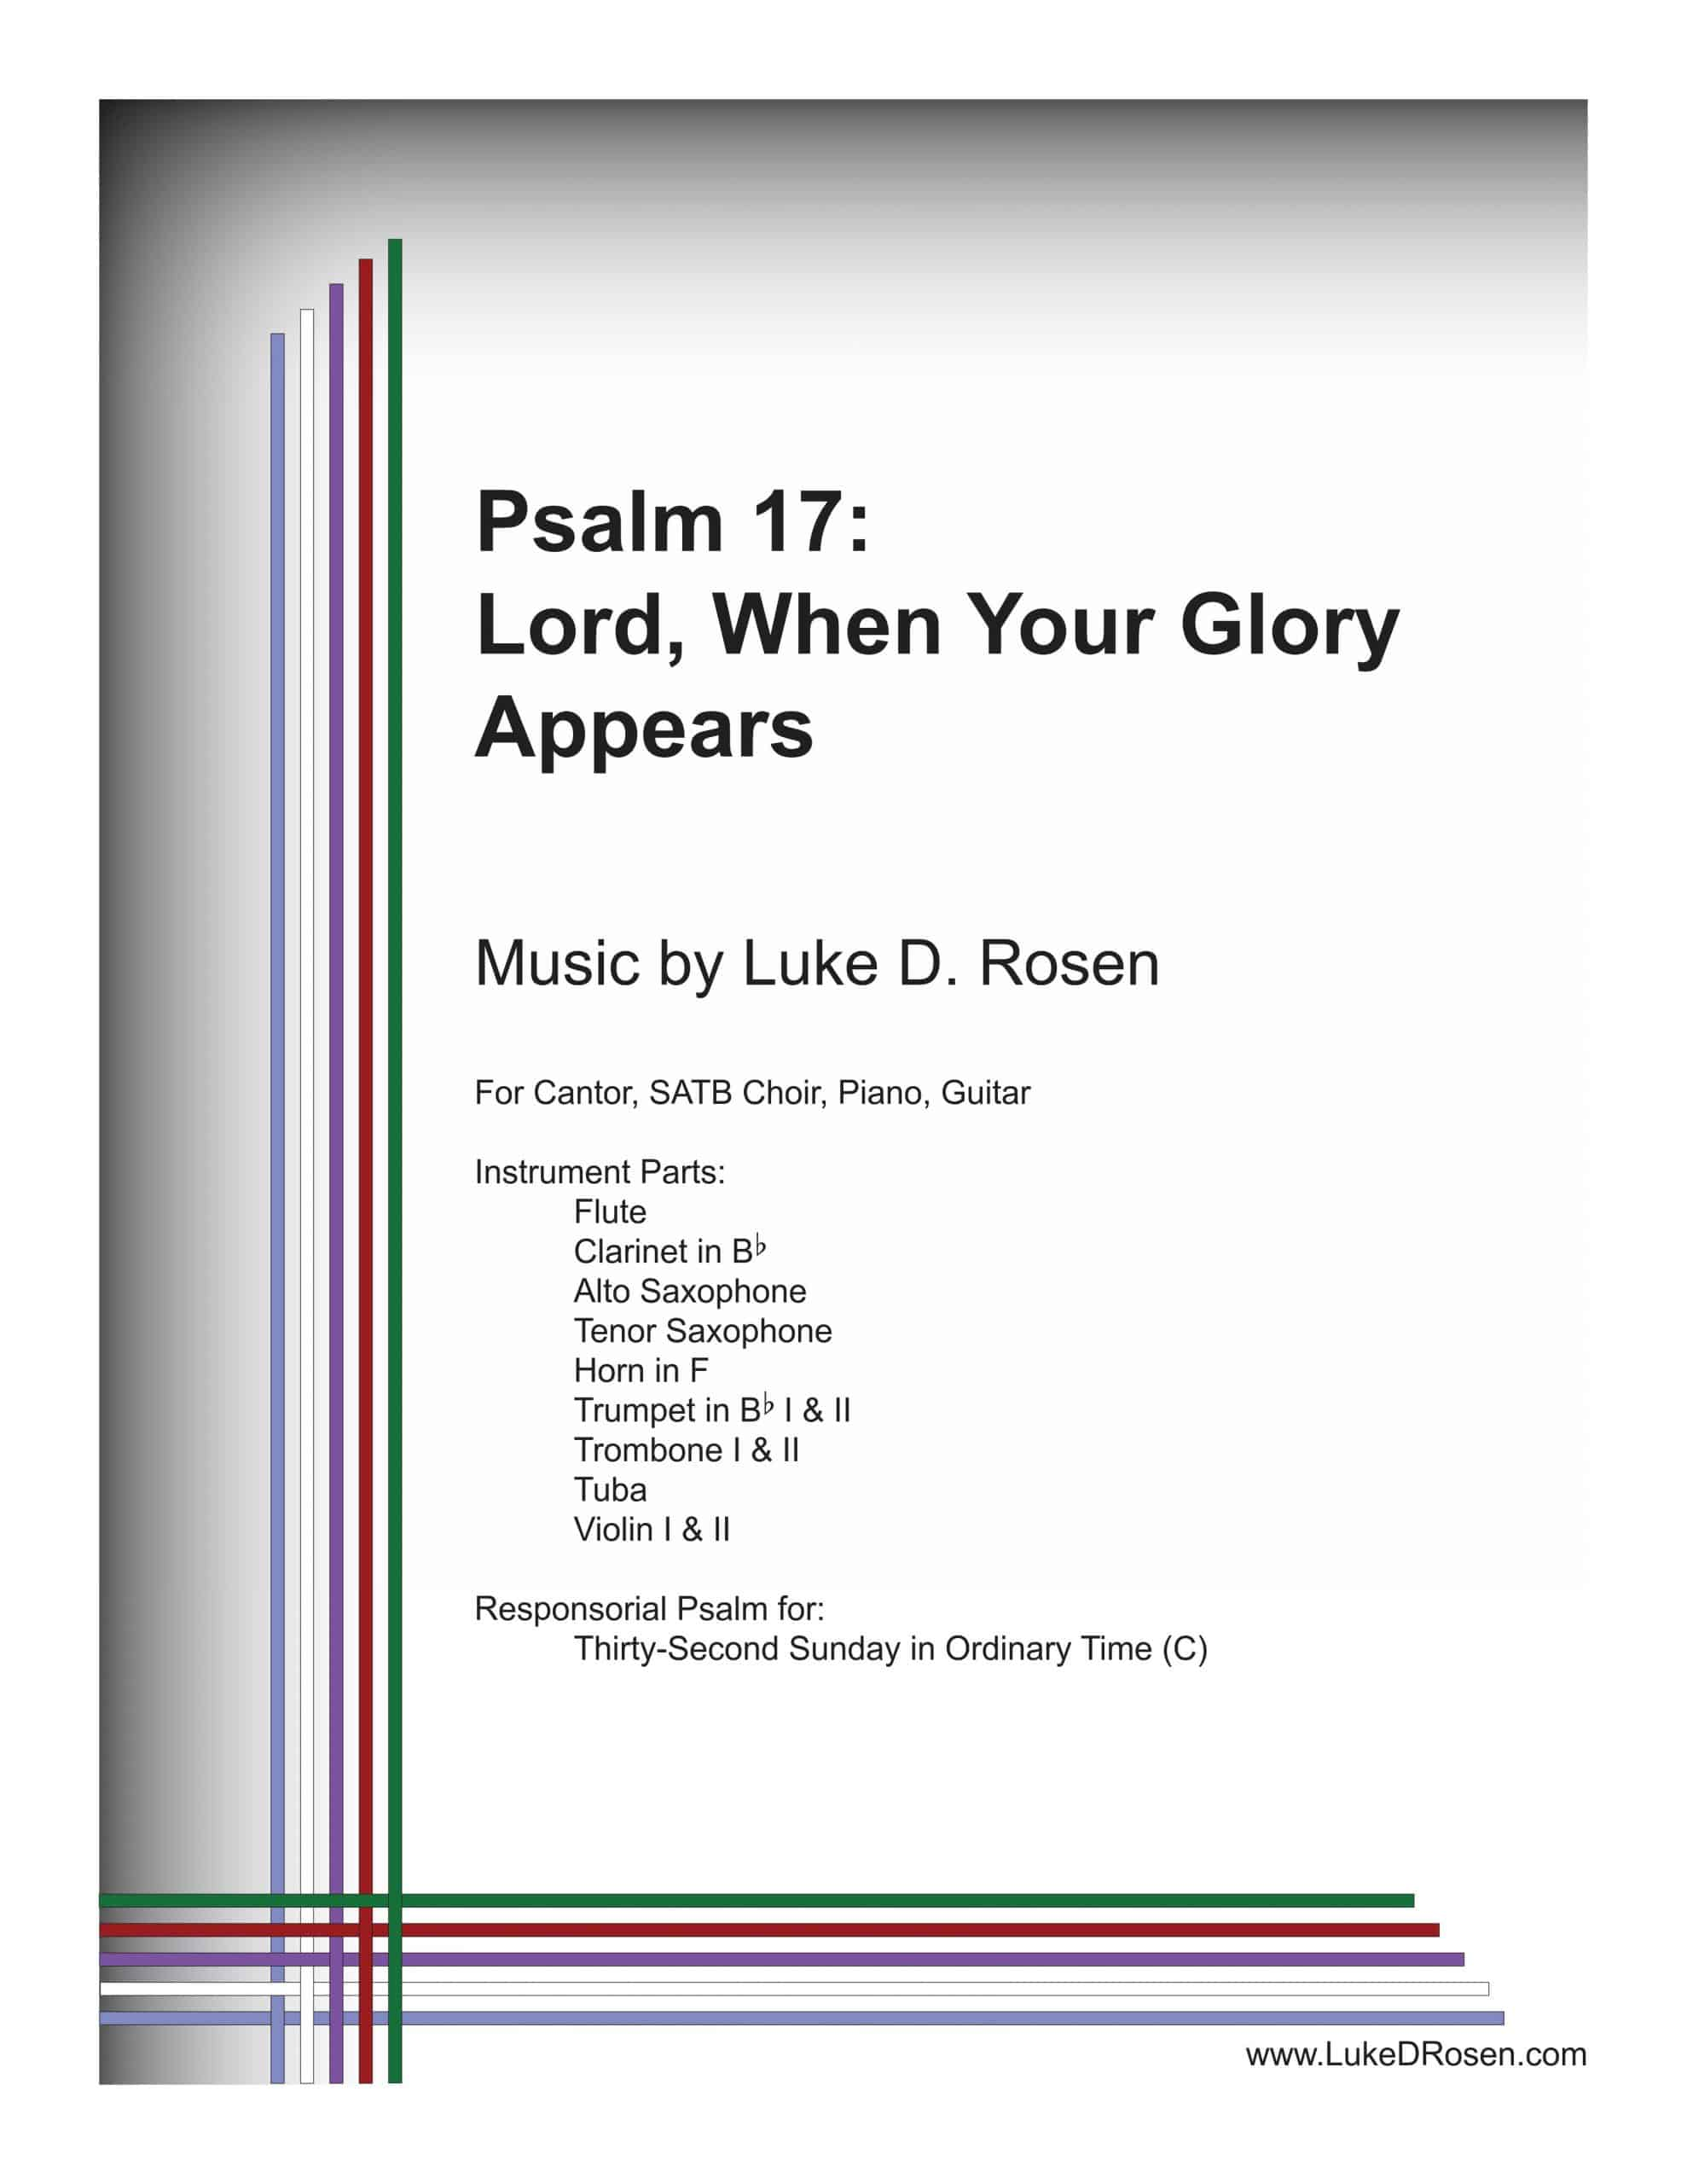 Psalm 17 Lord When Your Glory Appears ROSEN Sample Musicians Parts scaled